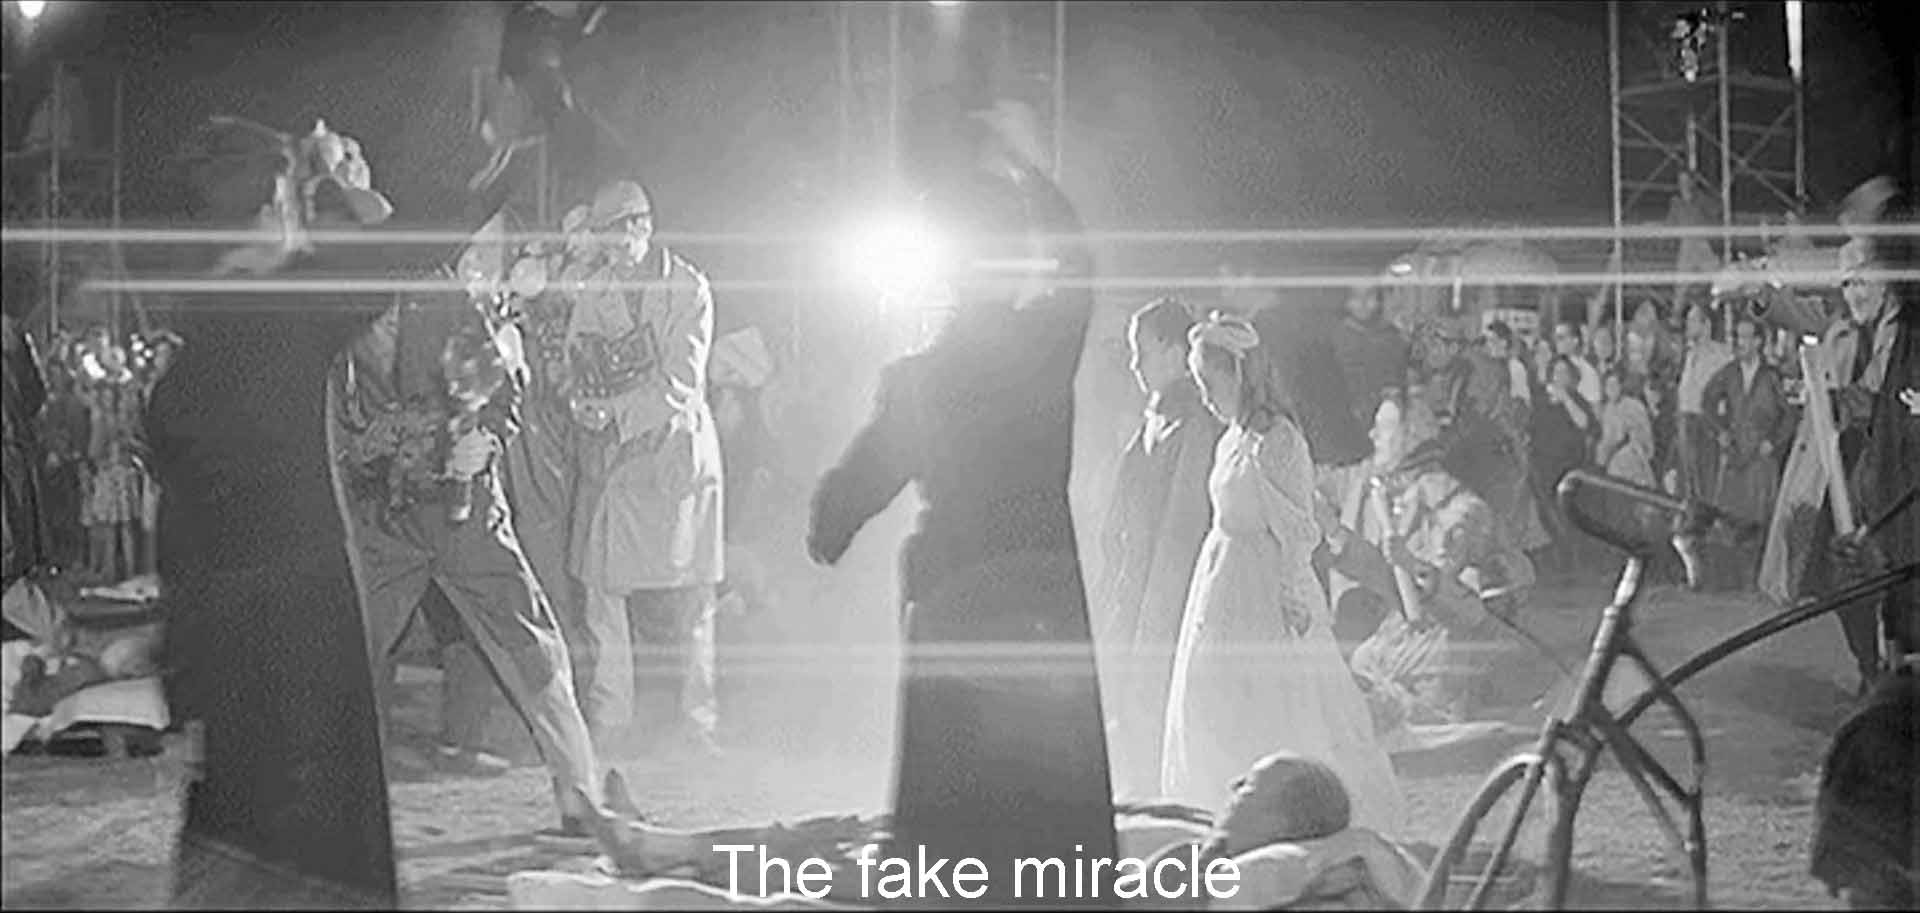 The fake miracle